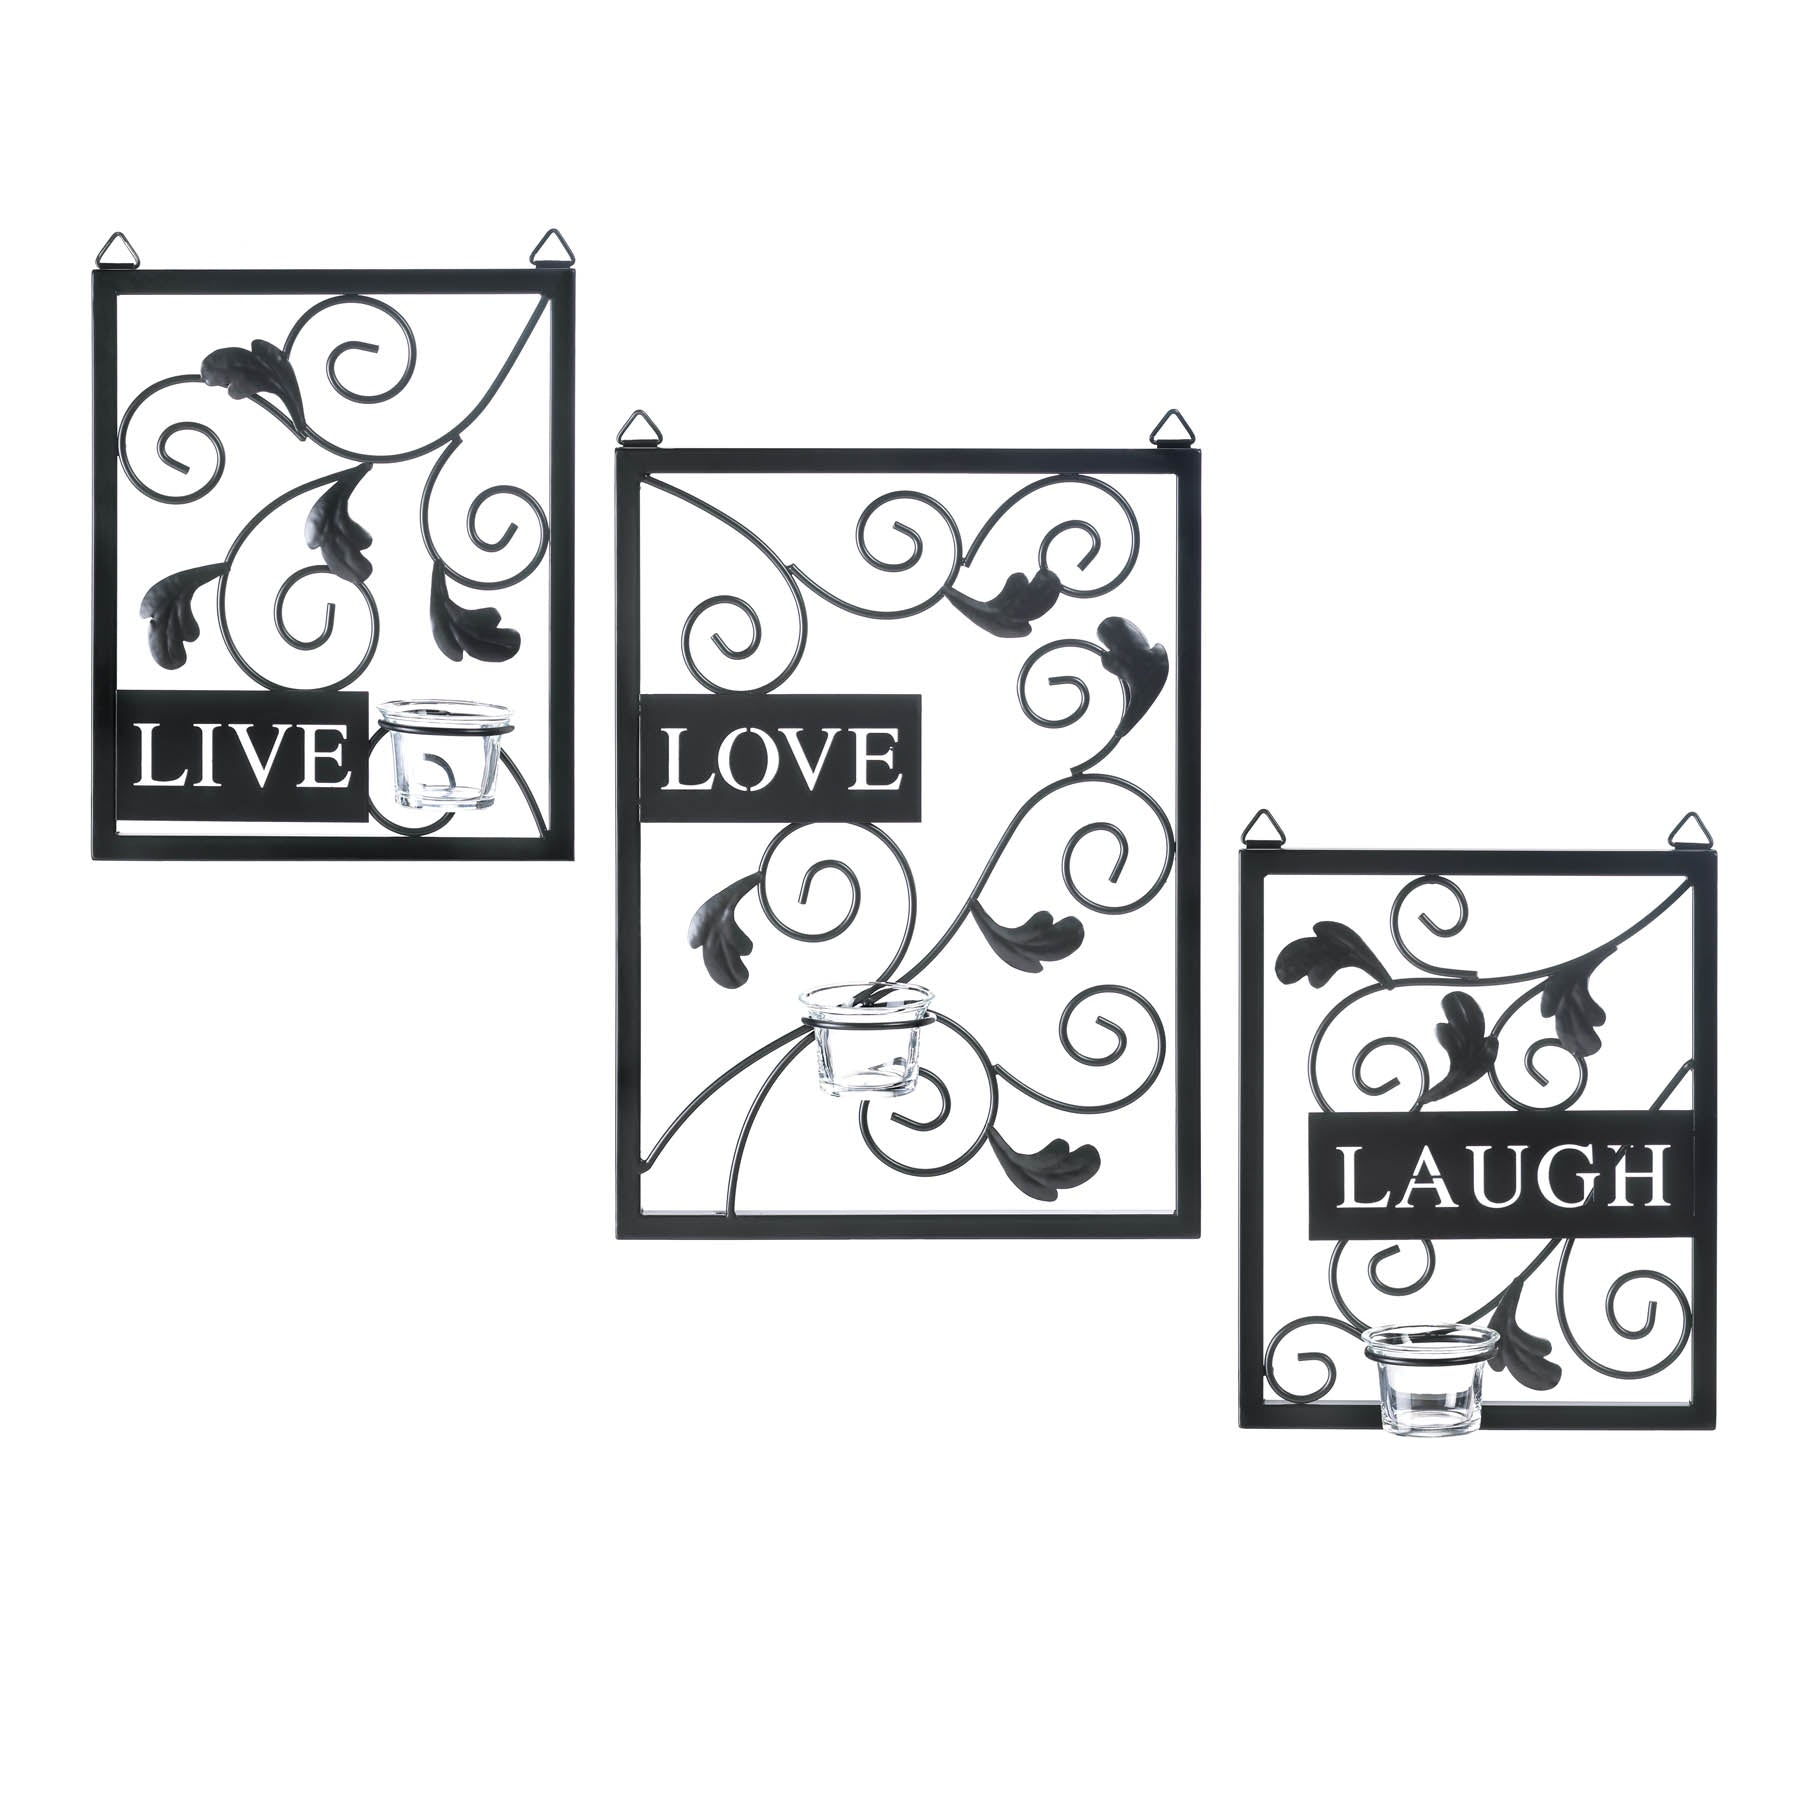 Live, Love, Laugh Wall Decor